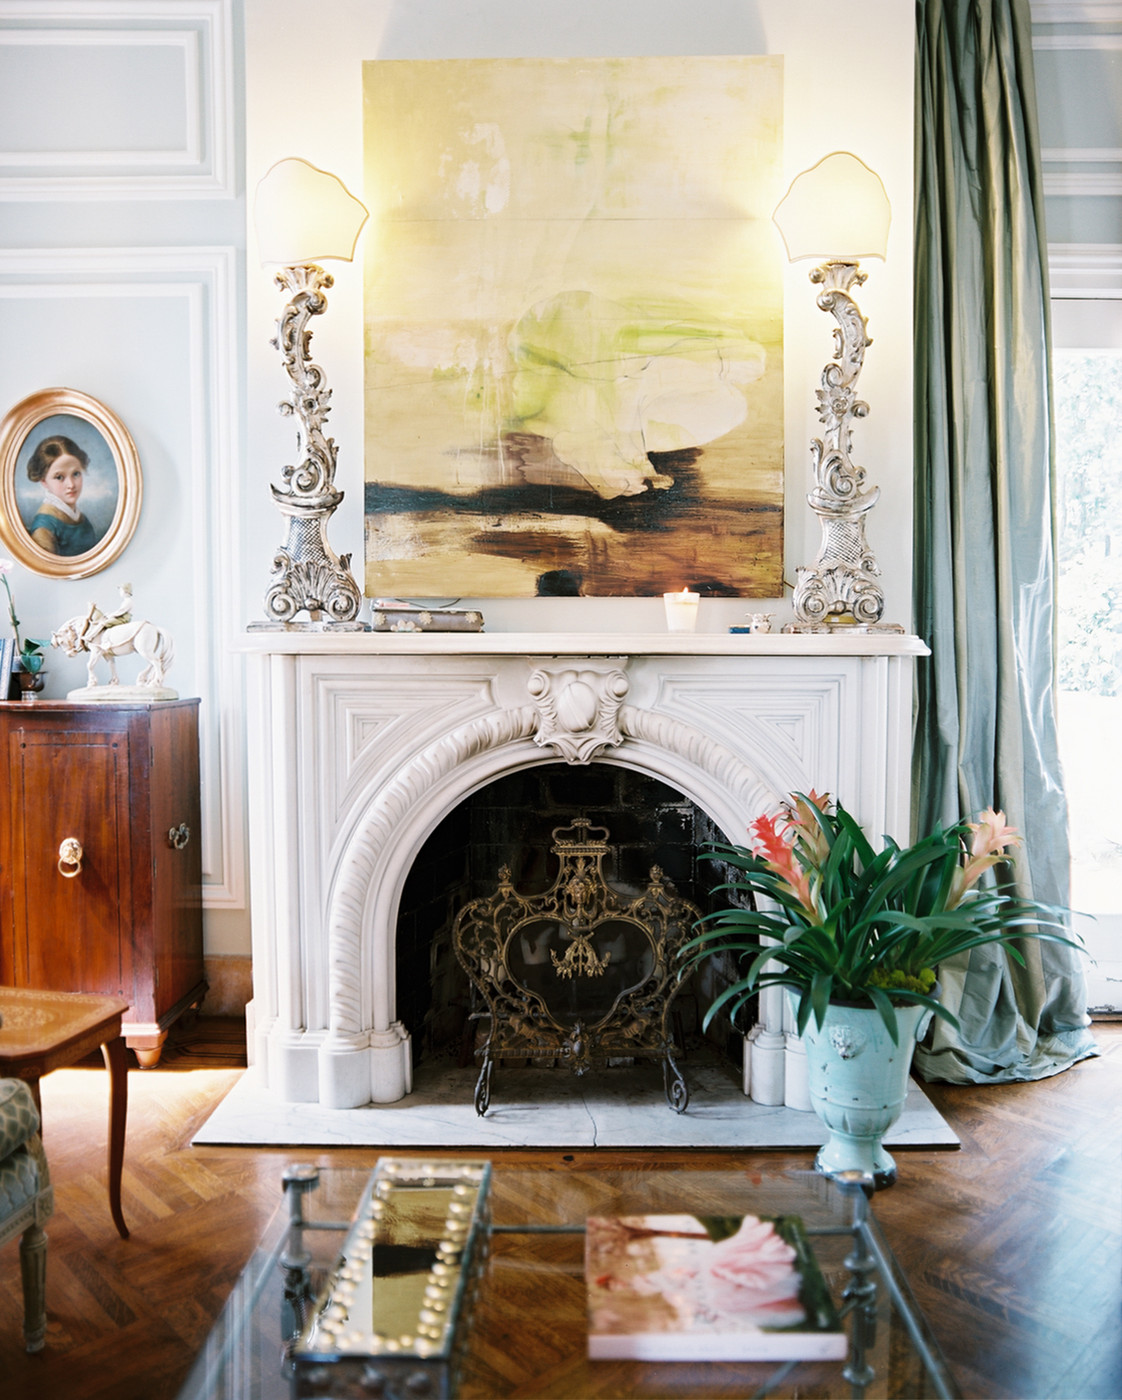 Fireplace arch photos design ideas remodel and decor - Decor above fireplace mantel ...